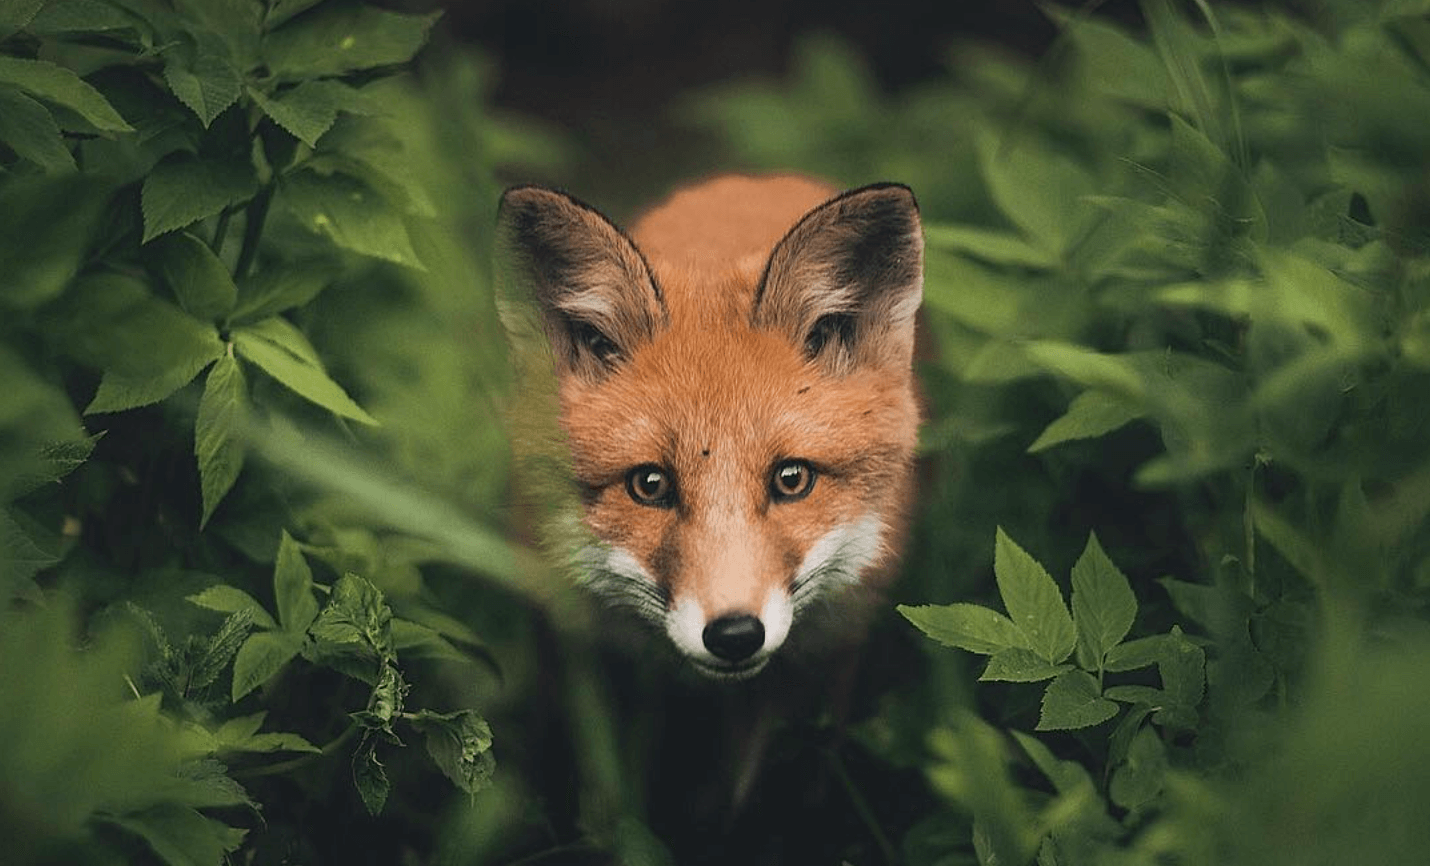 Foxes are not so red, as we imagine them to present